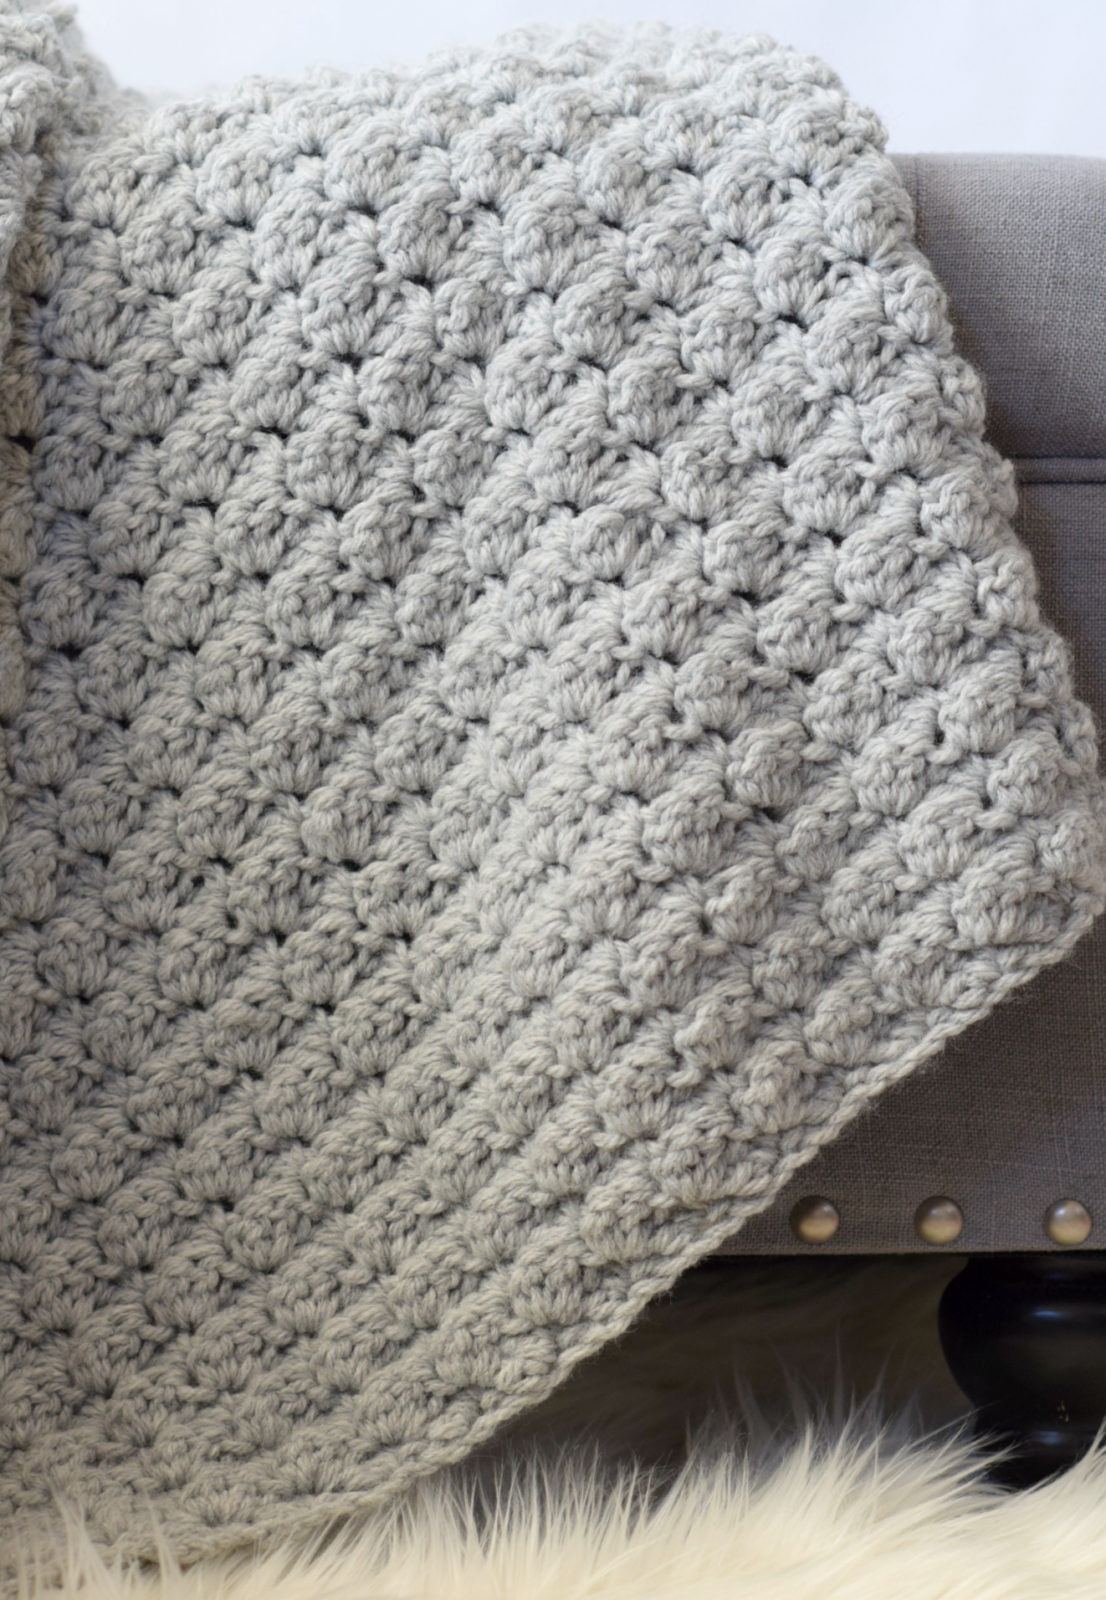 Crochet Throw Patterns Luxury Simple Crocheted Blanket Go to Pattern – Mama In A Stitch Of Brilliant 40 Photos Crochet Throw Patterns